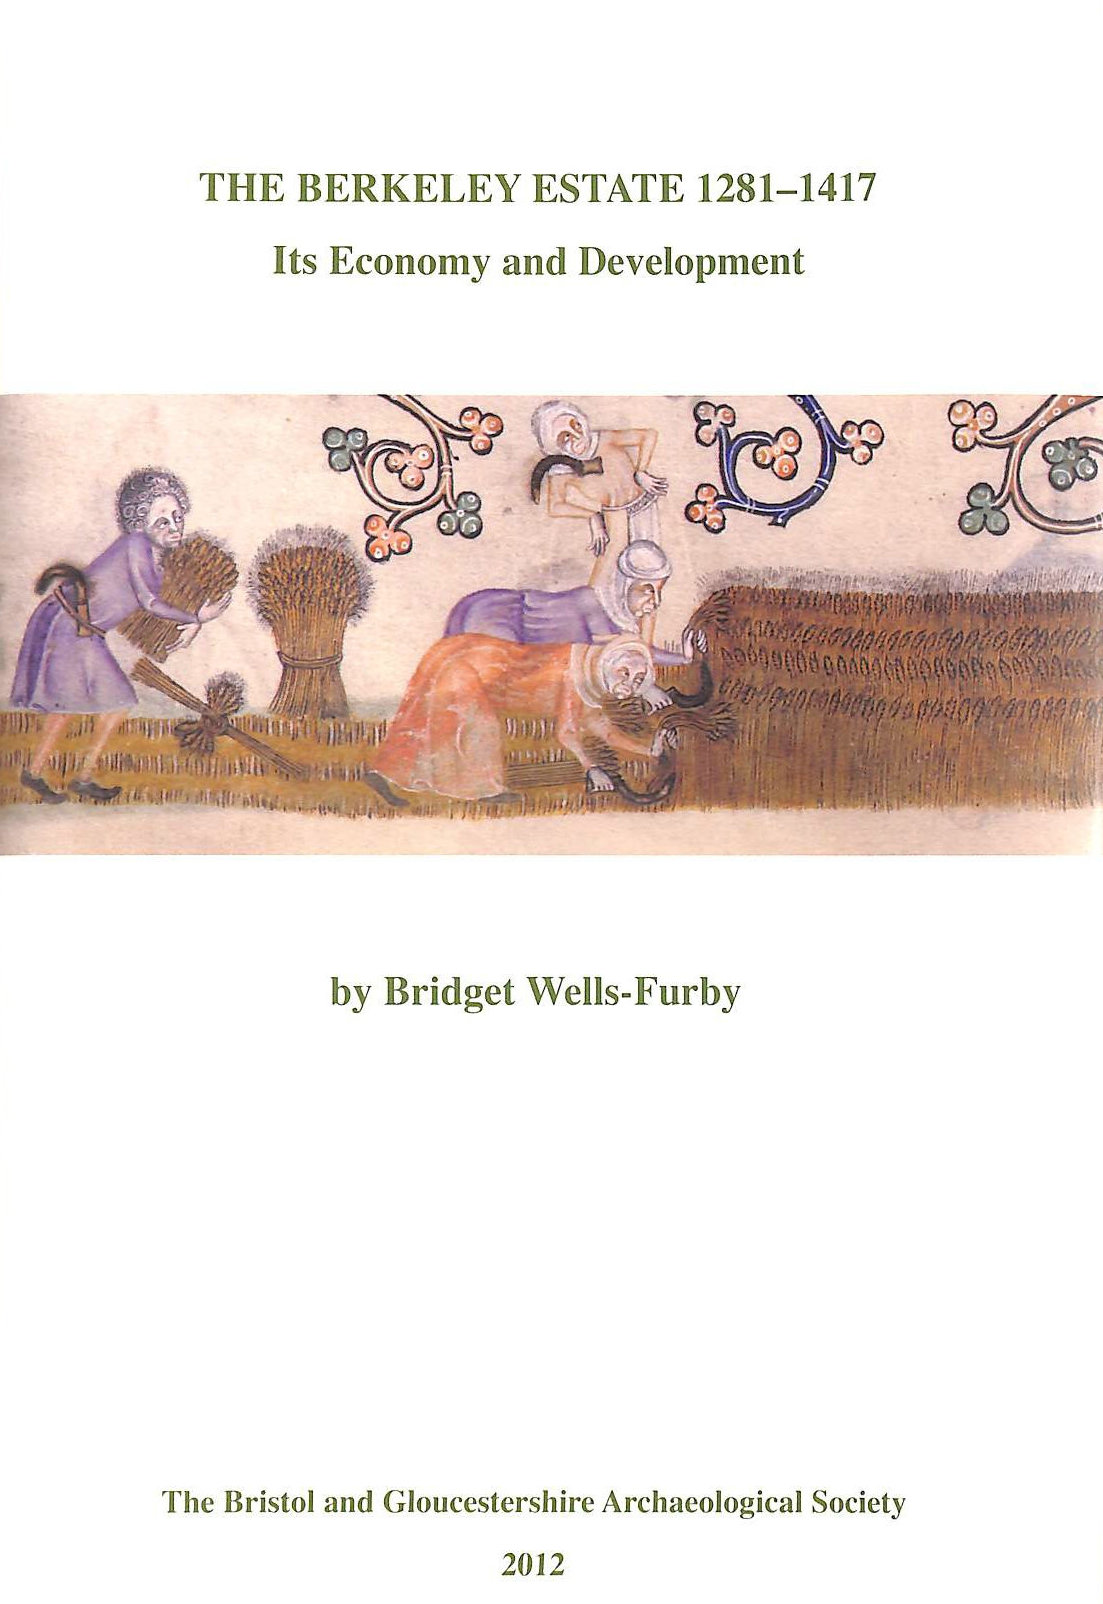 Image for The Berkeley Estate 1281-1417, Its Economy and Development